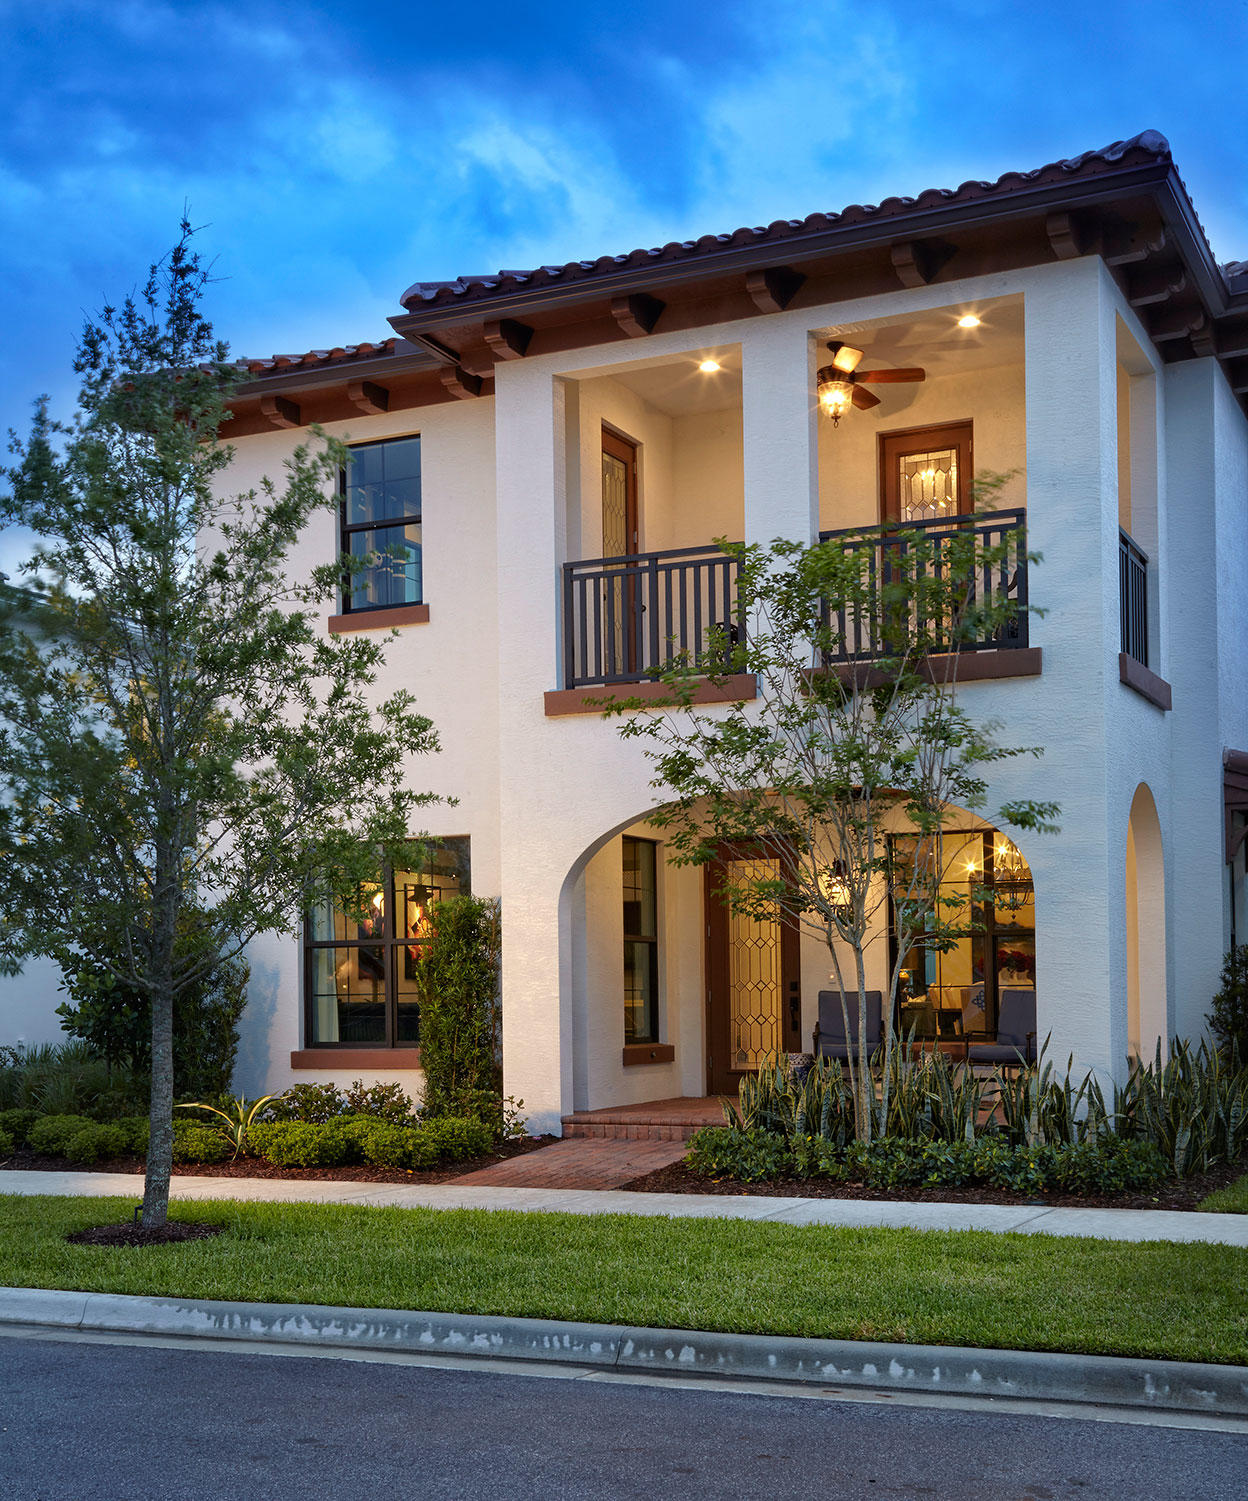 New Home for sale at 13617 Dumont Road in Palm Beach Gardens